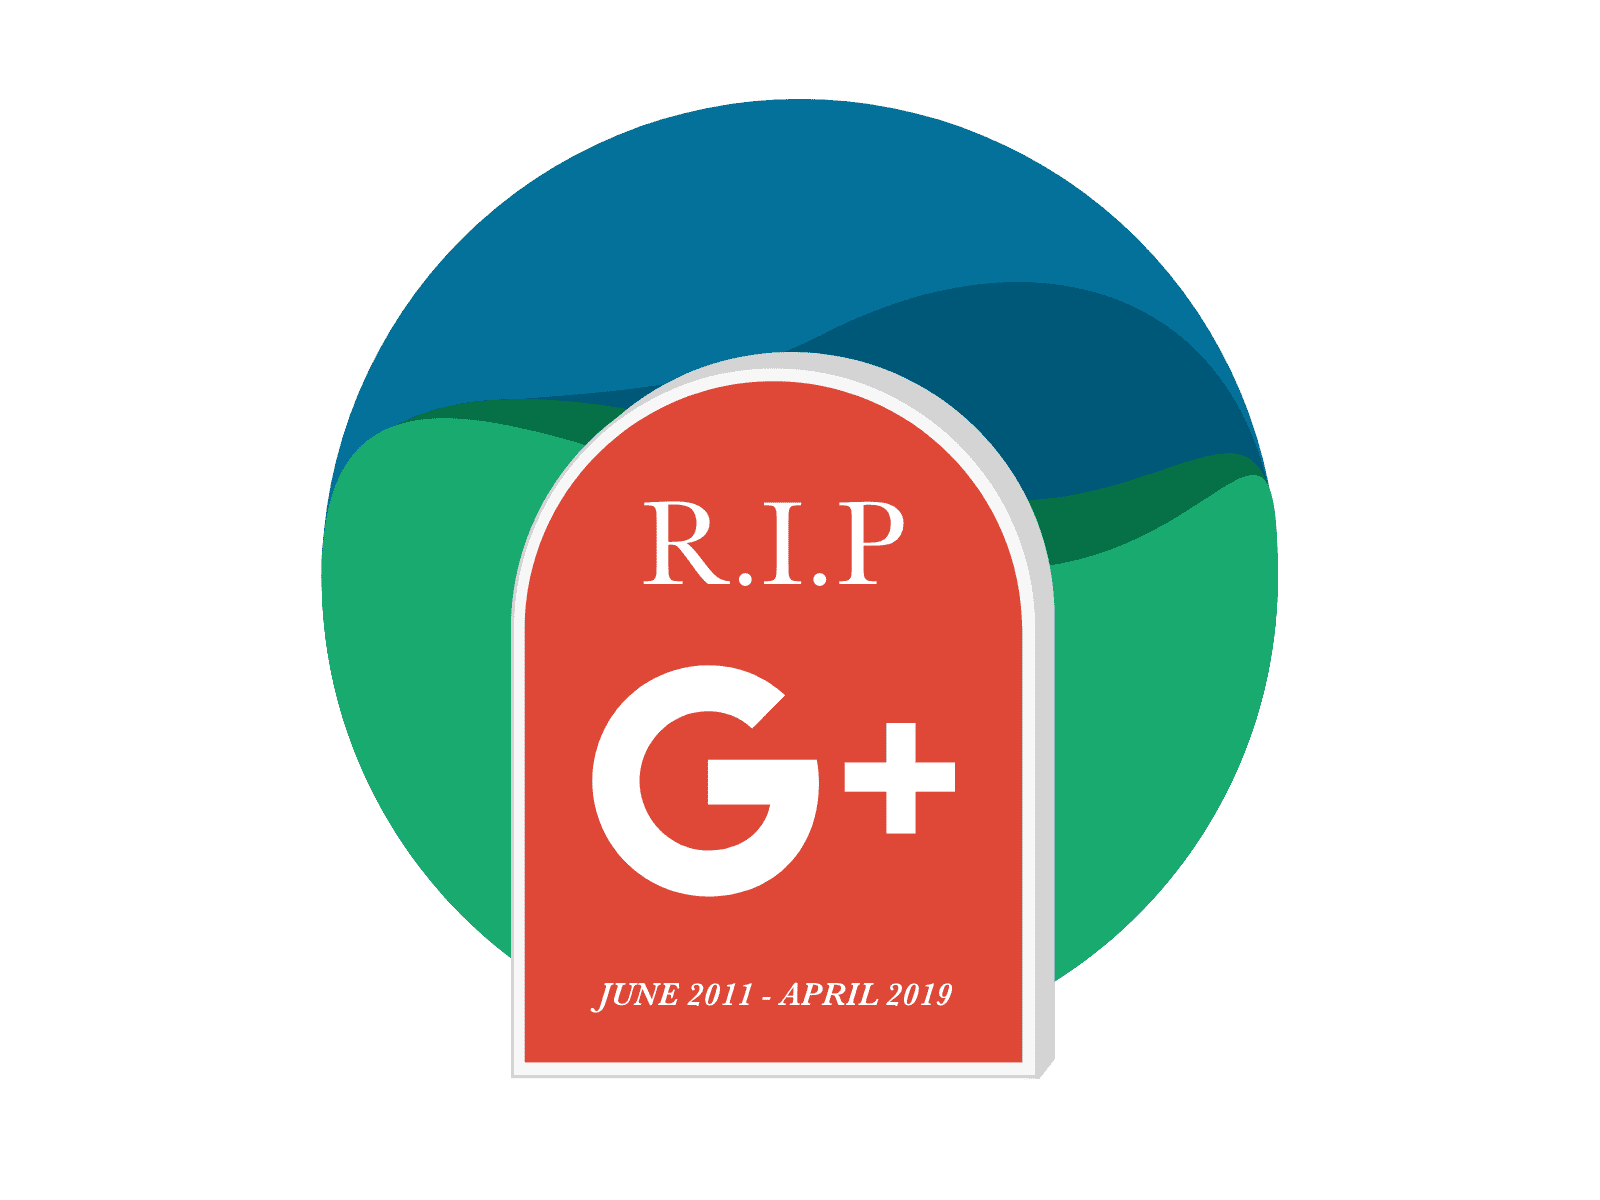 R.I.P. Google Plus Image | Kanuka Digital